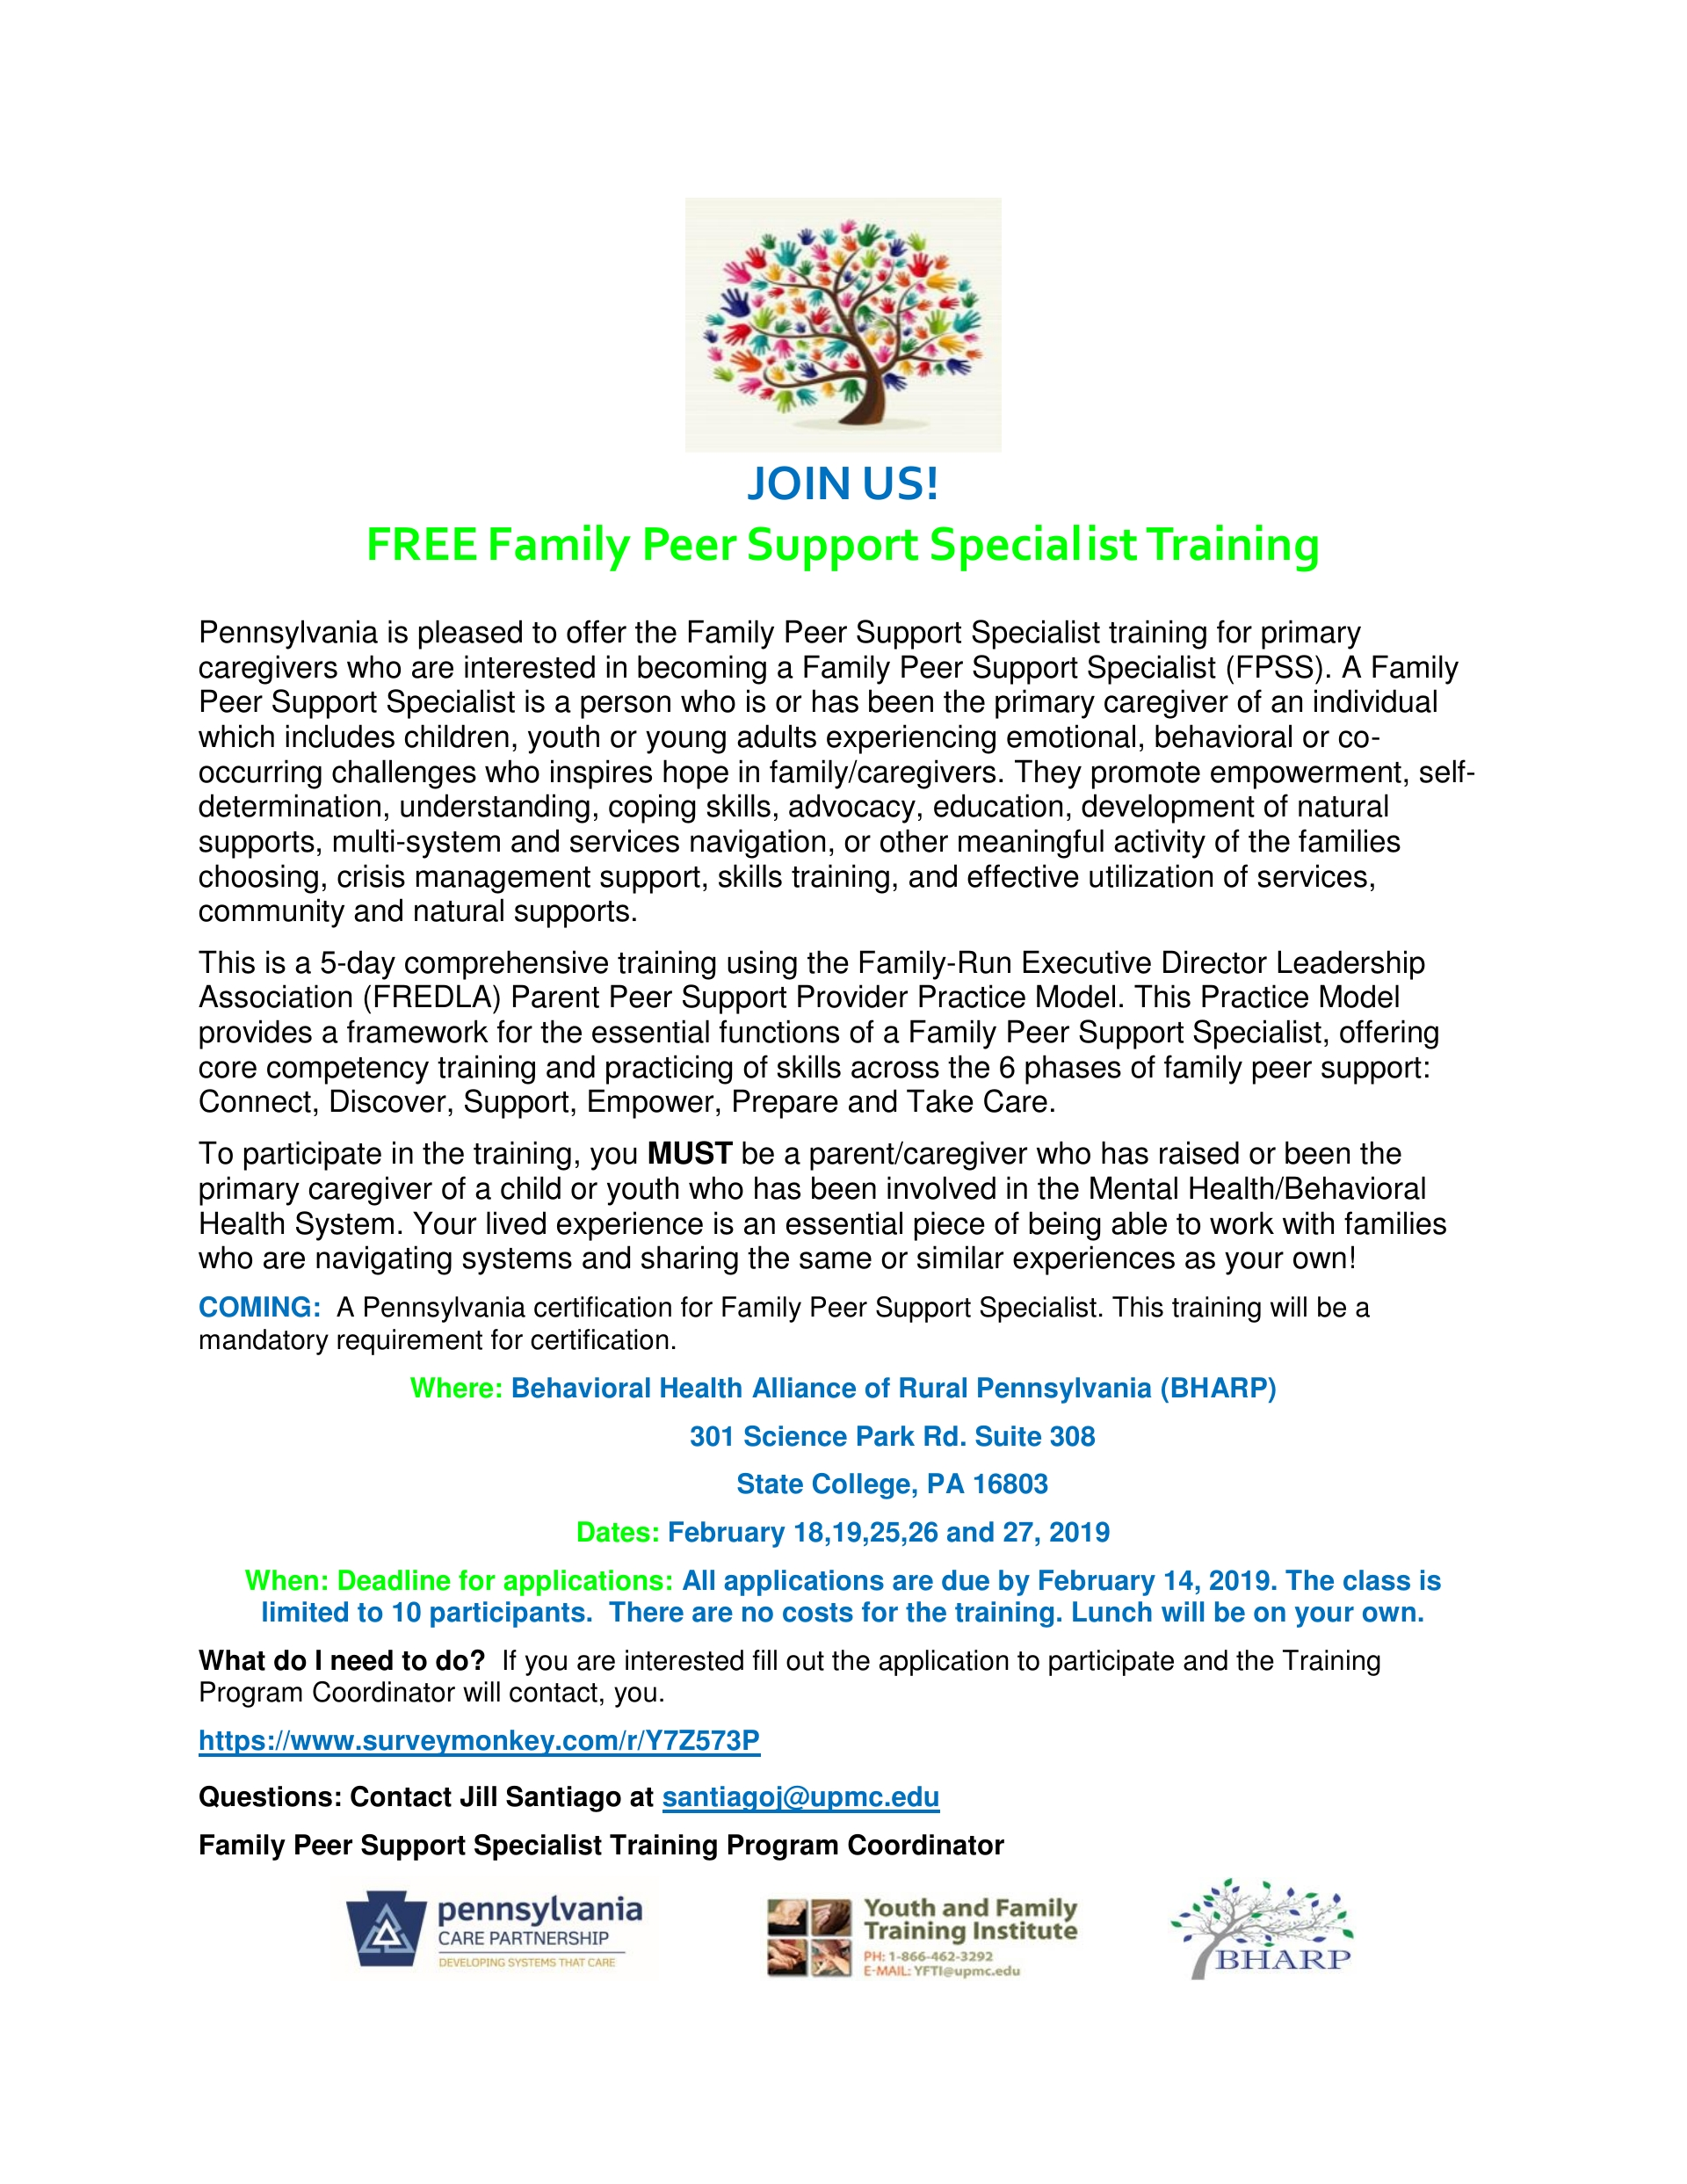 Family Peer Support Specialist Training FREE  STATE COLLEGE